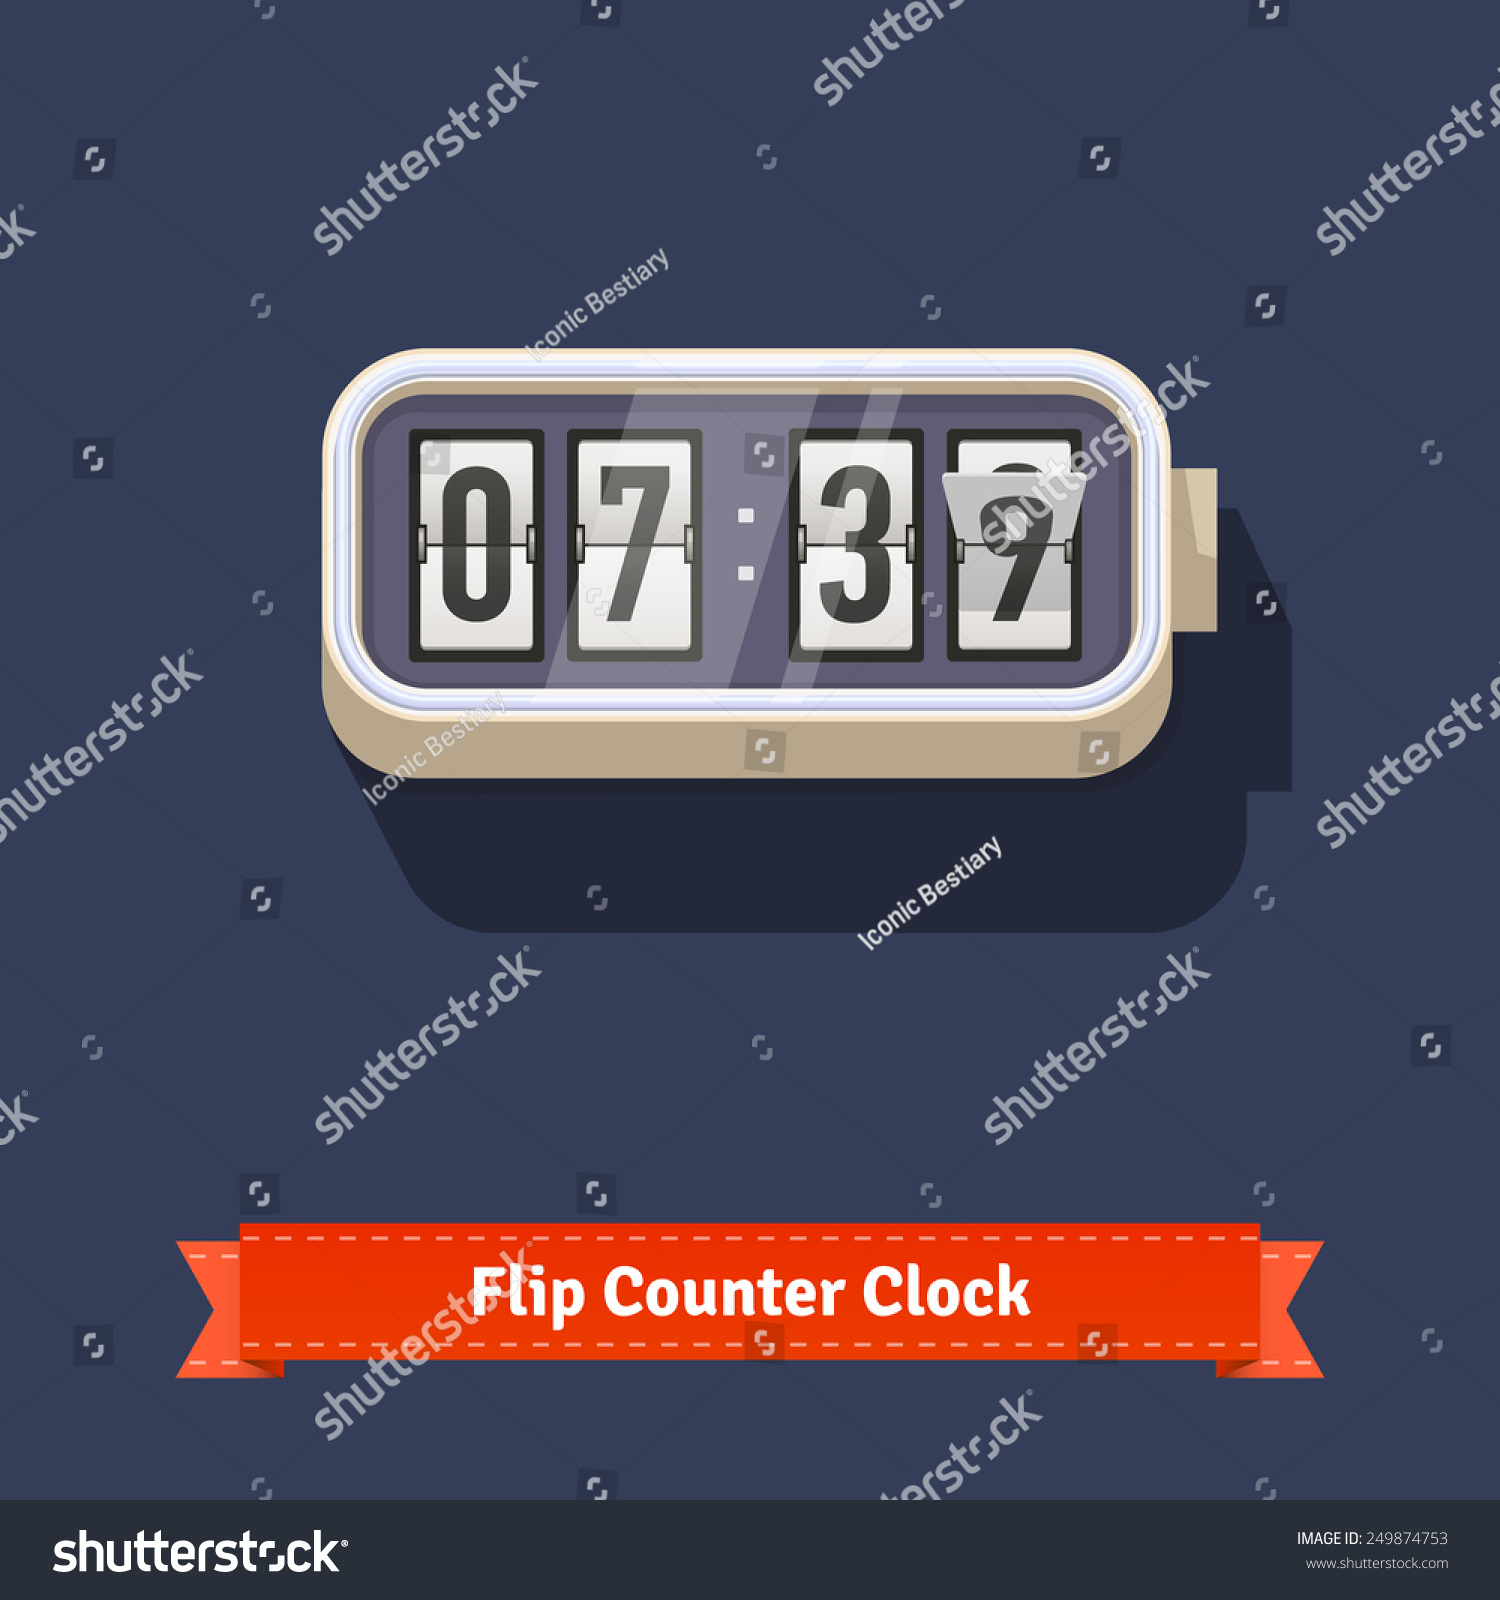 Wall flipping clock number counter template stock vector 249874753 wall flipping clock and number counter template plus all numbers with flips flat style illustration amipublicfo Choice Image